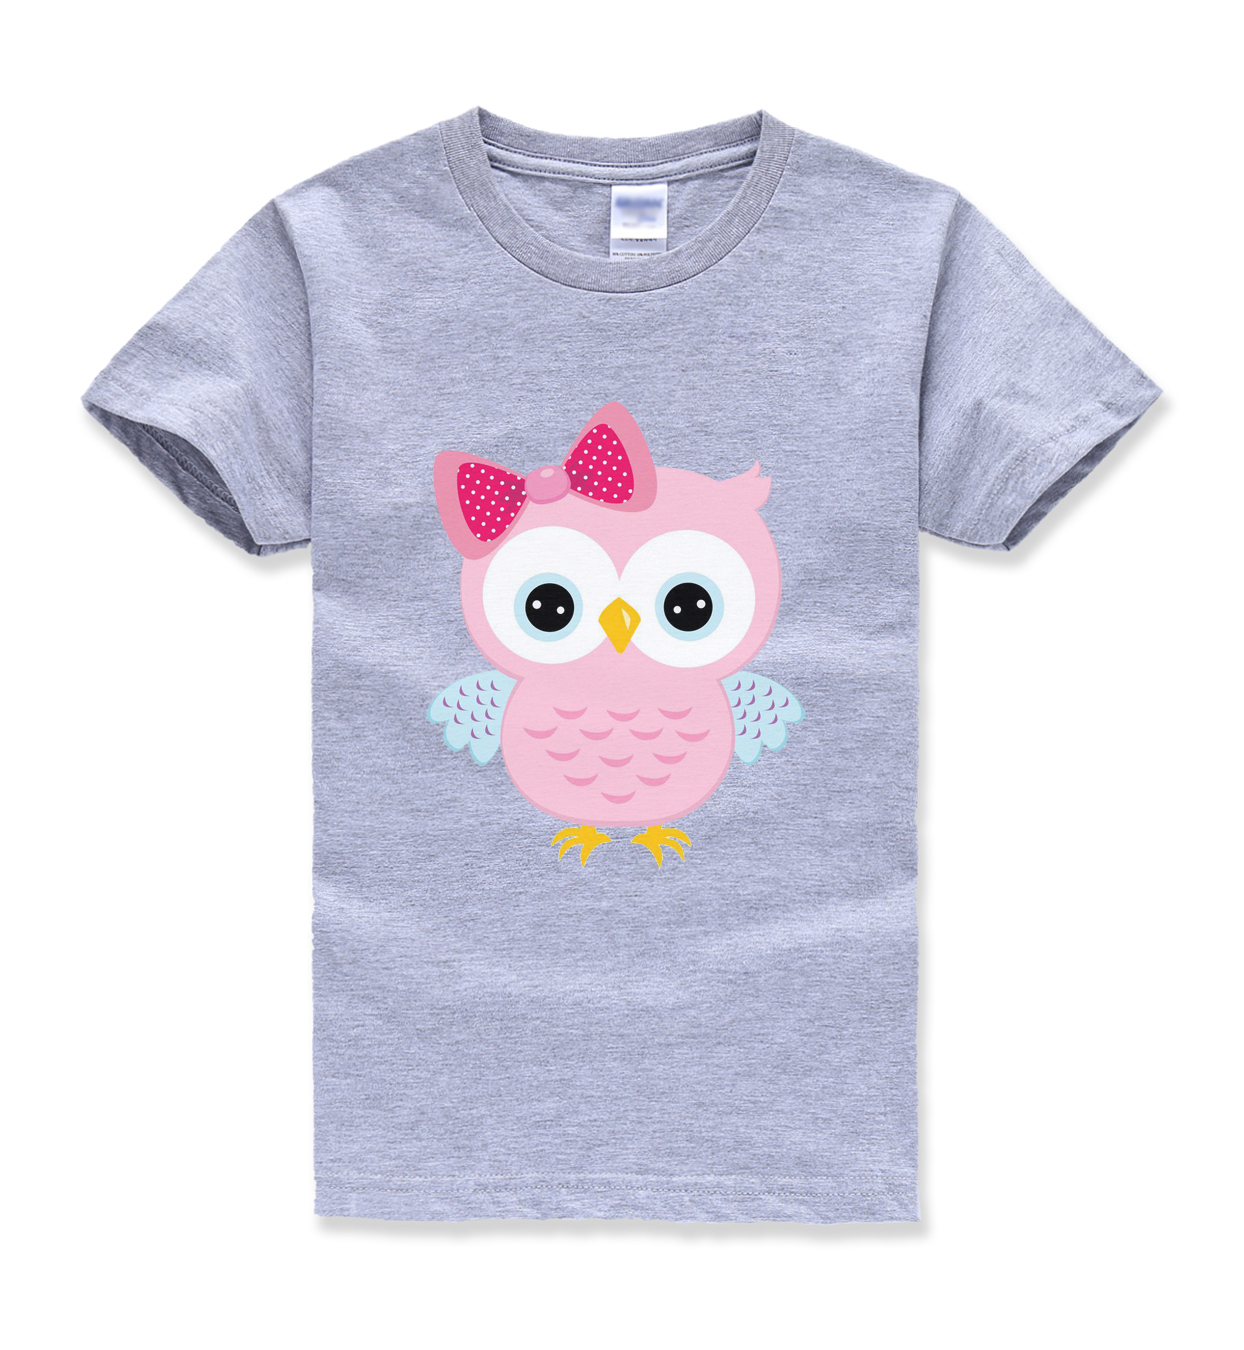 bird printing kids short sleeve t shirts streetwear homme summer t shirt 2018 casual o neck t-shirt children baby girl clothes цена и фото